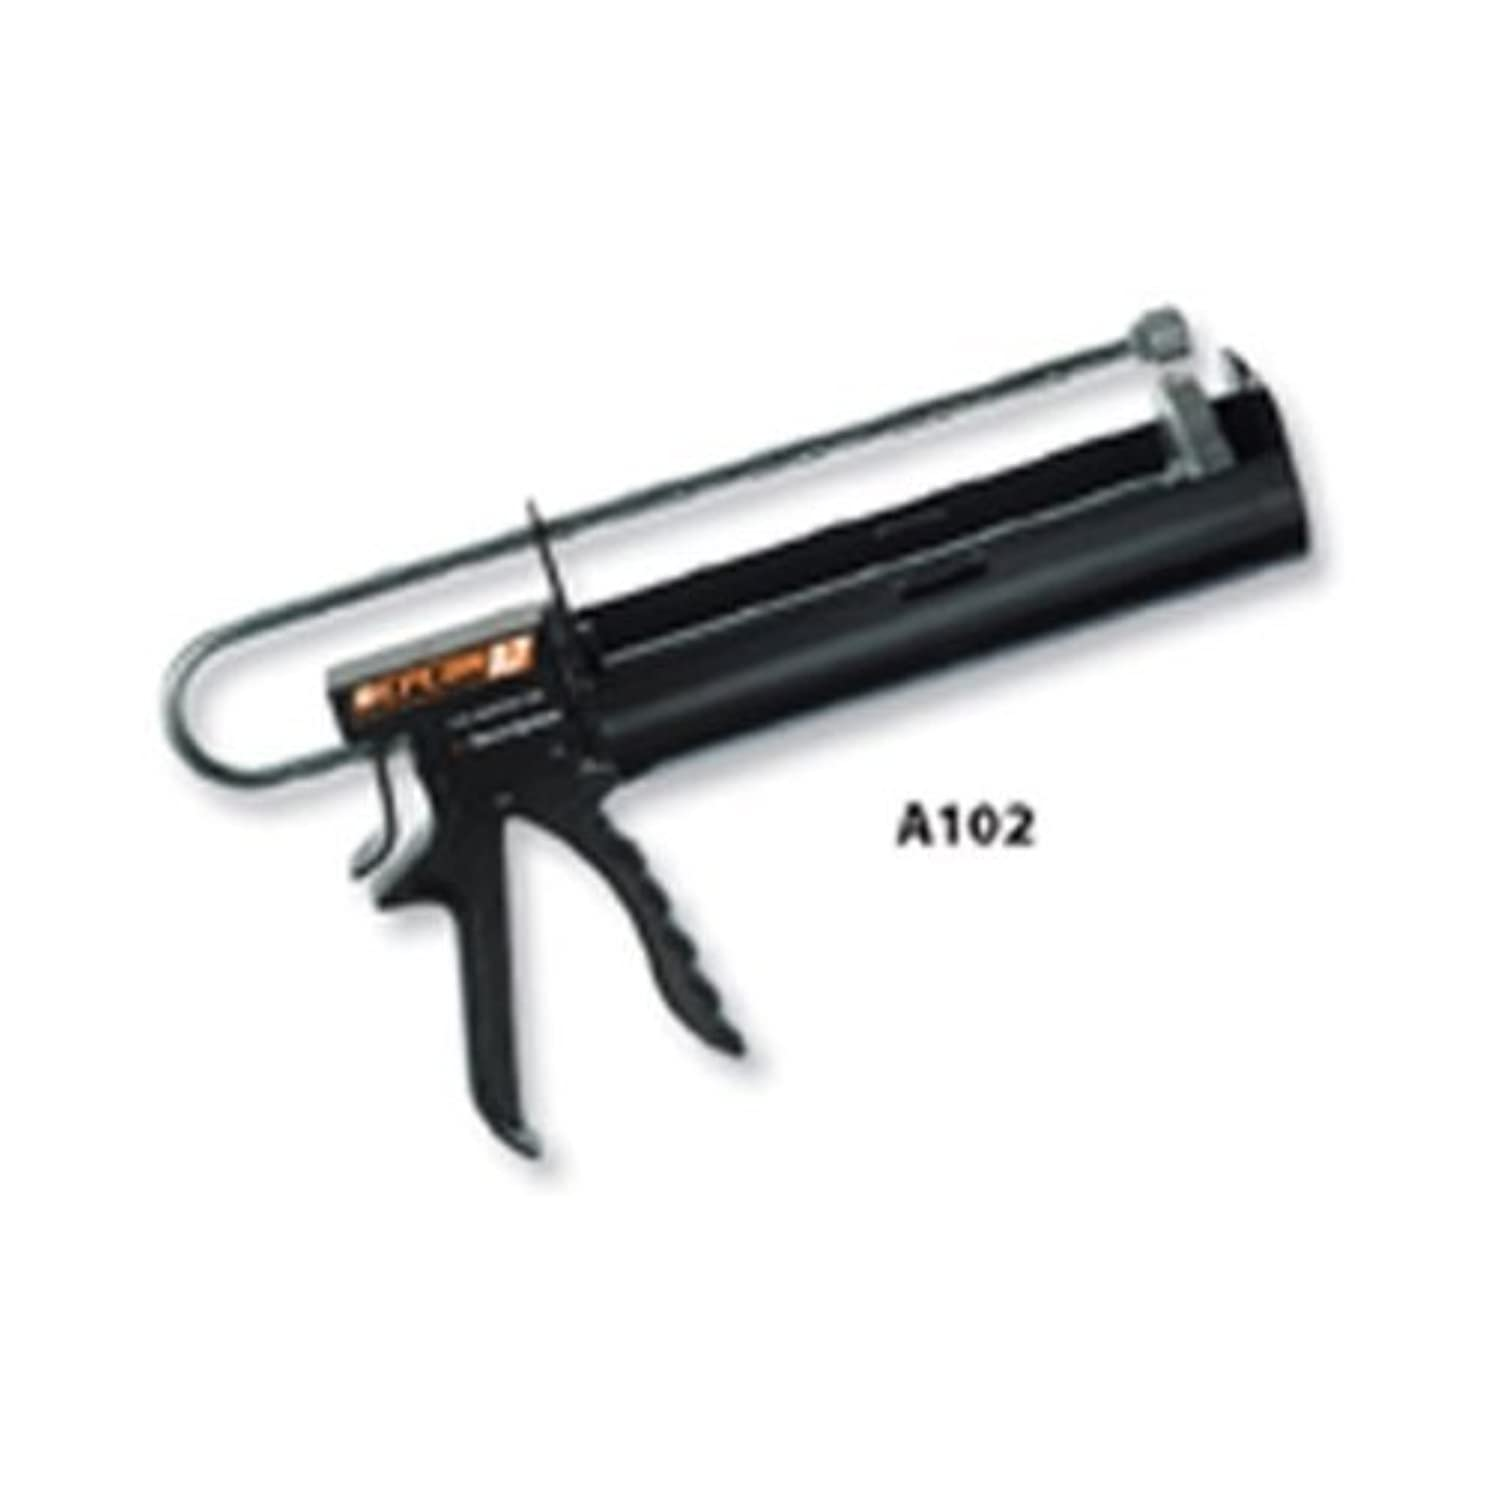 ITW Ramset Red Head A102 Epcon A7L Injection Tool 28 Fl Oz by ITW Ramset Red Head